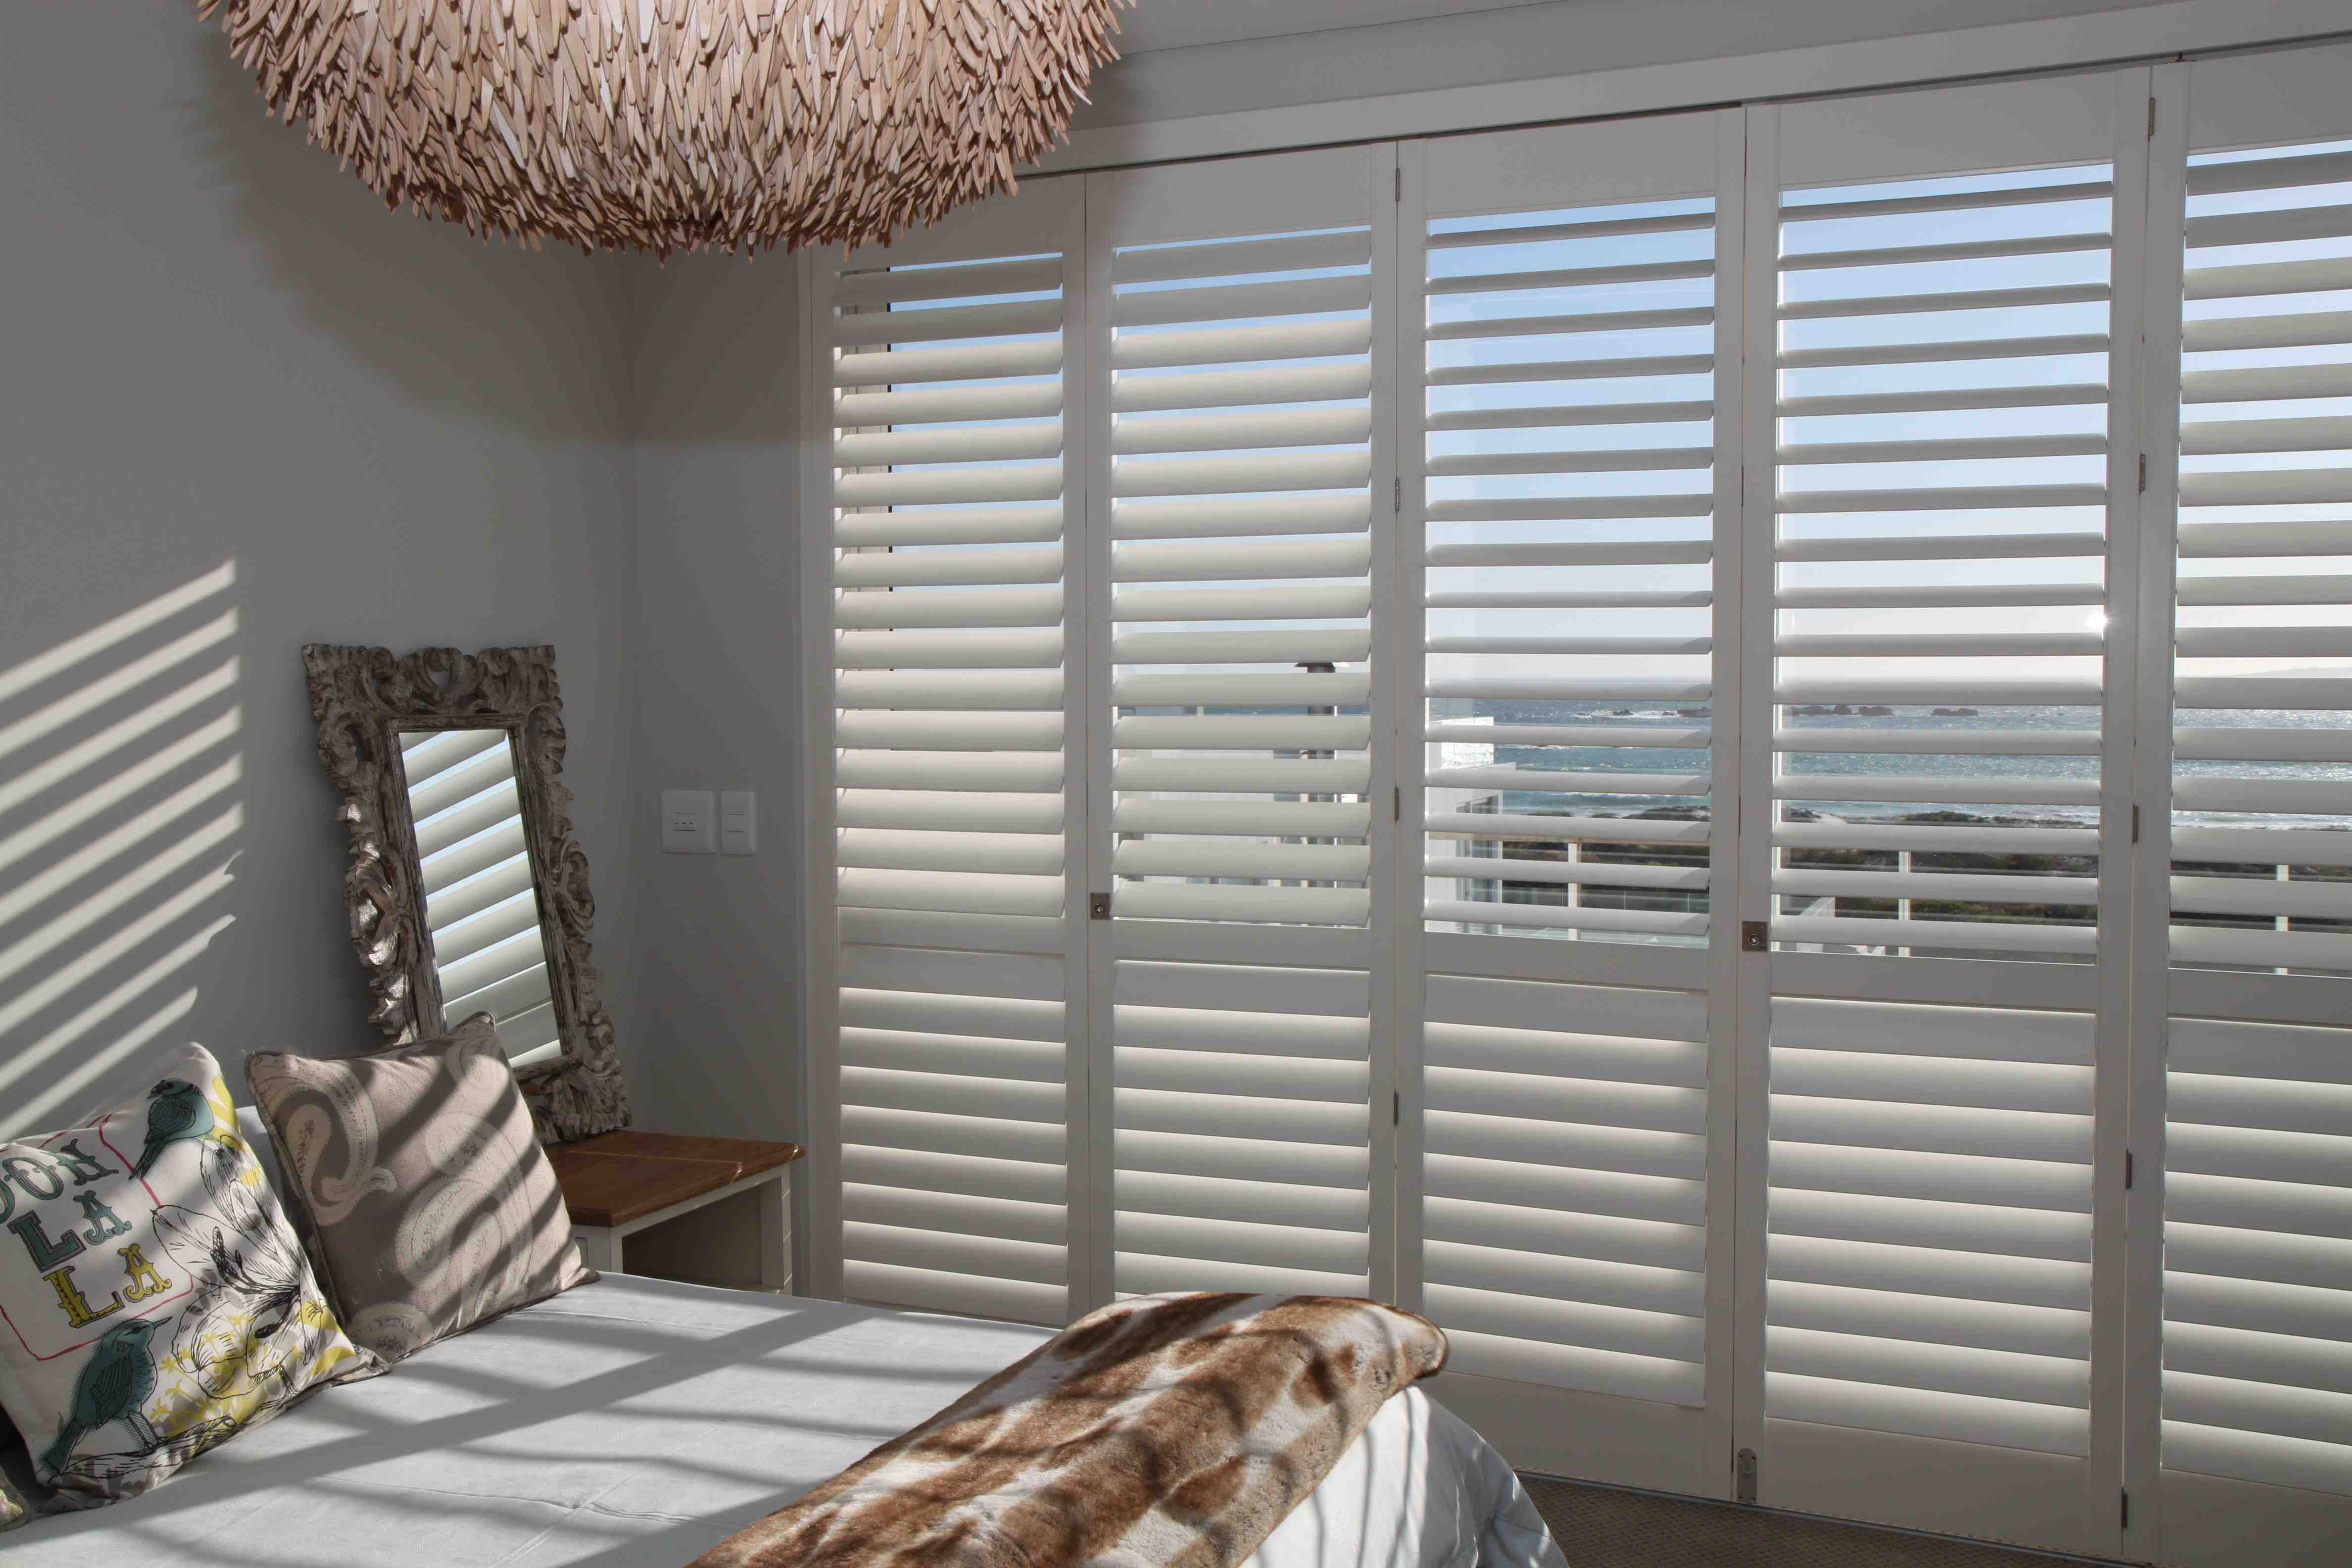 Bedroom Room Shutters American Shutters